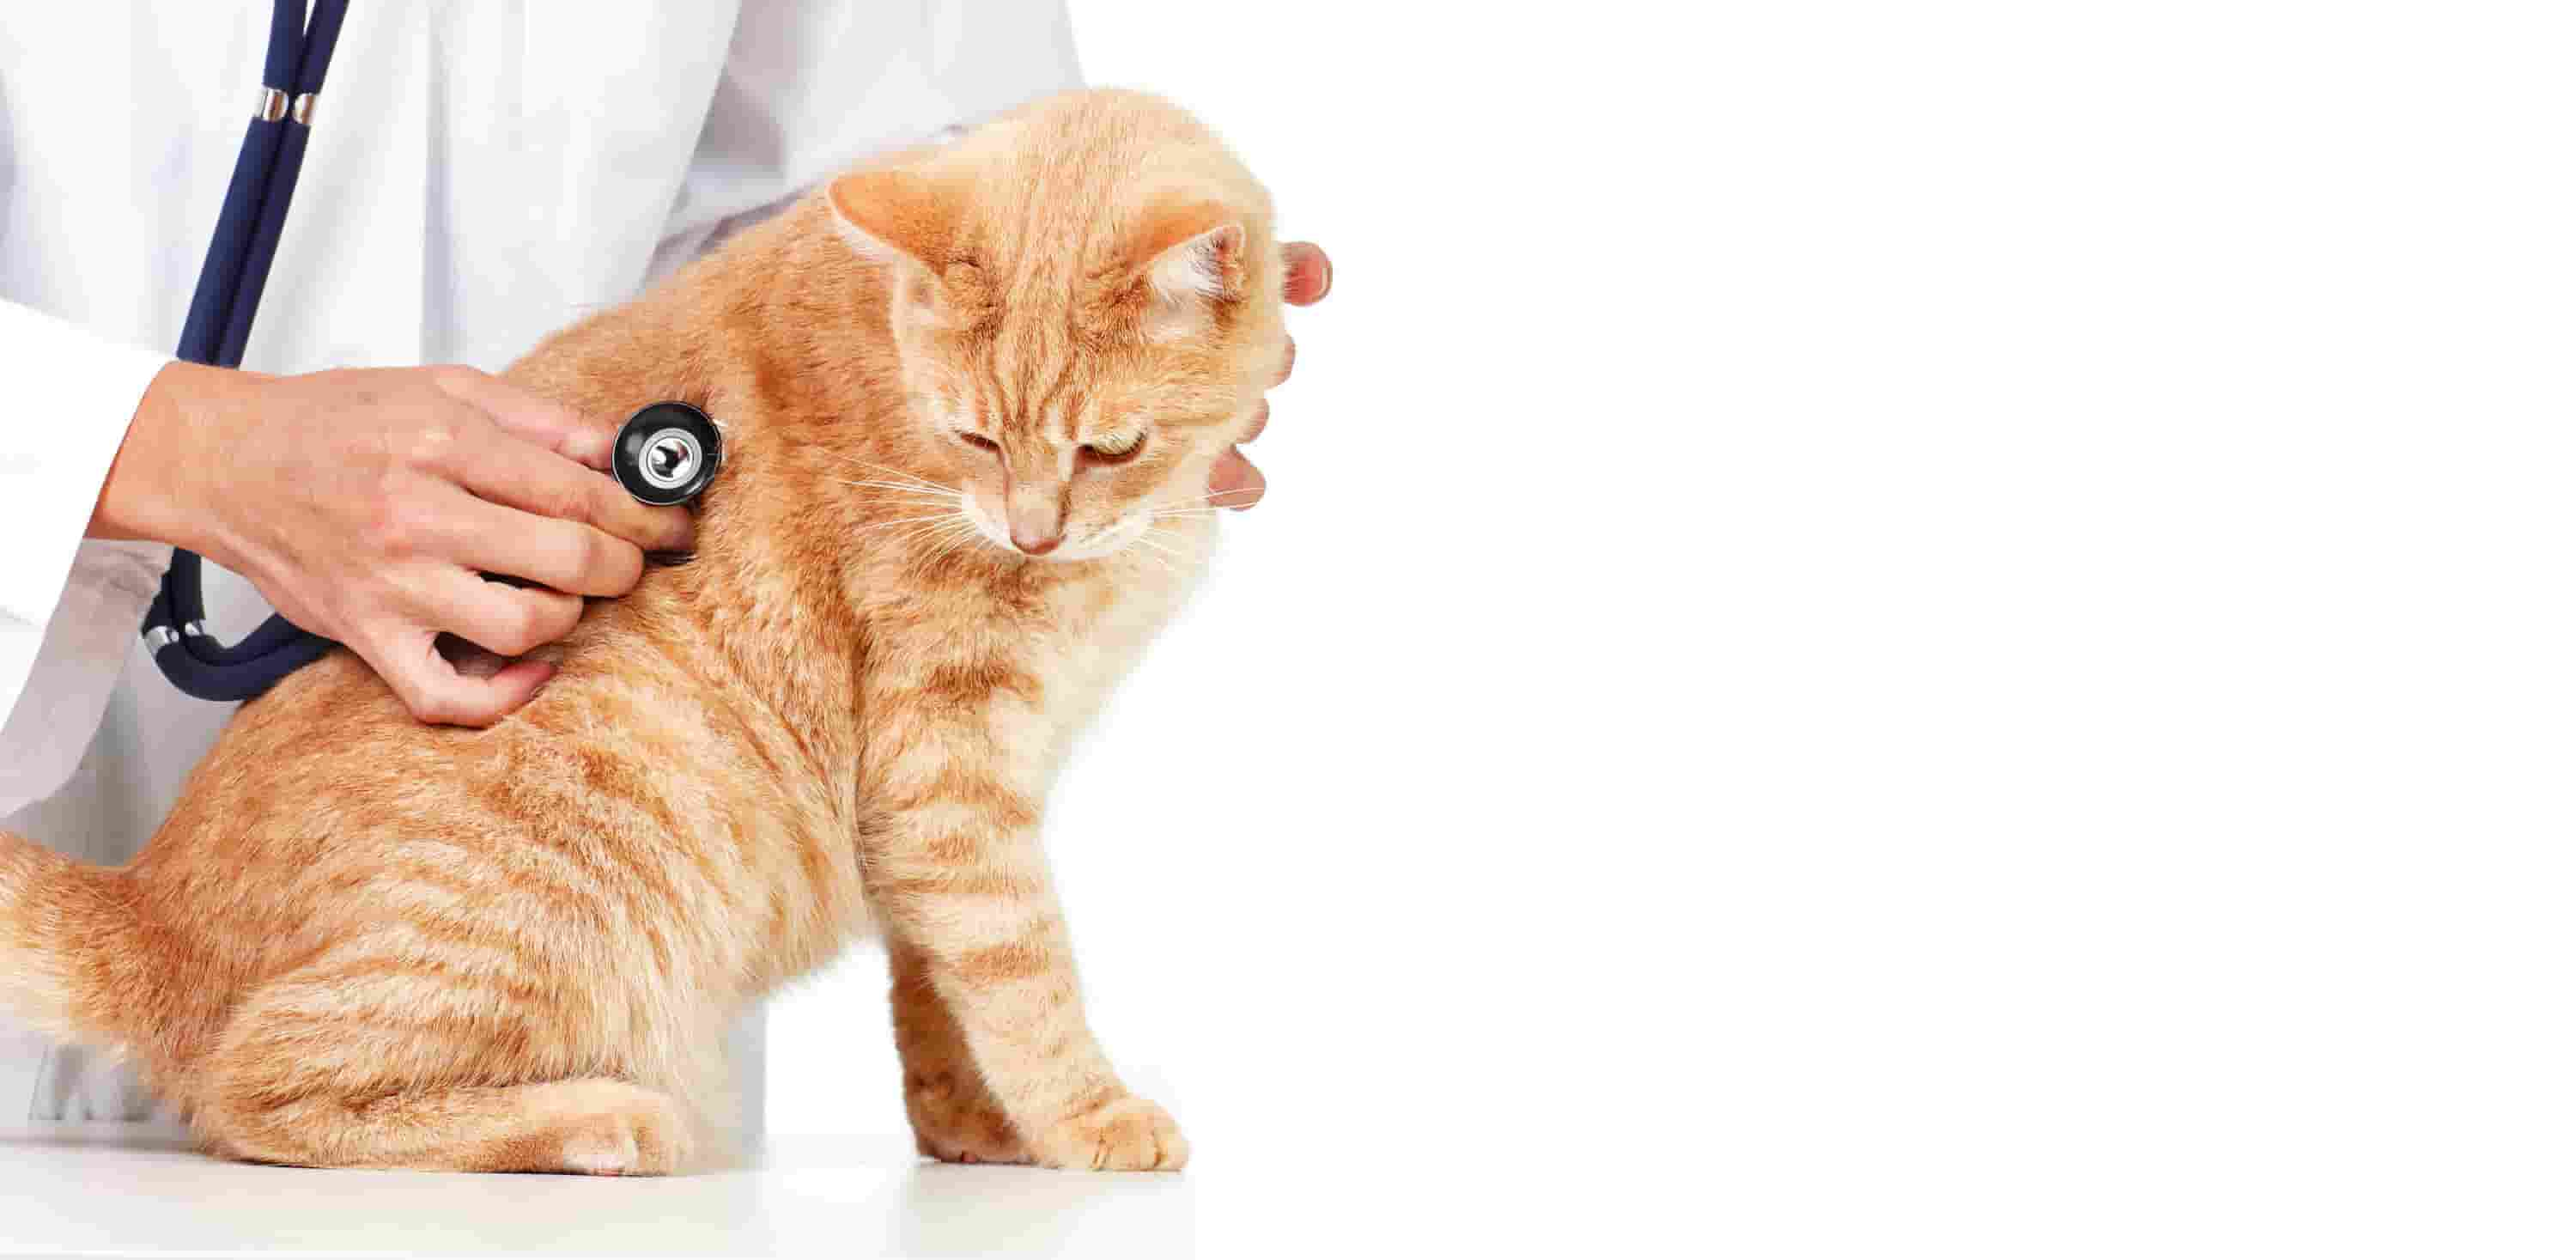 How serious are heart murmurs in cats? How are heart murmurs graded?